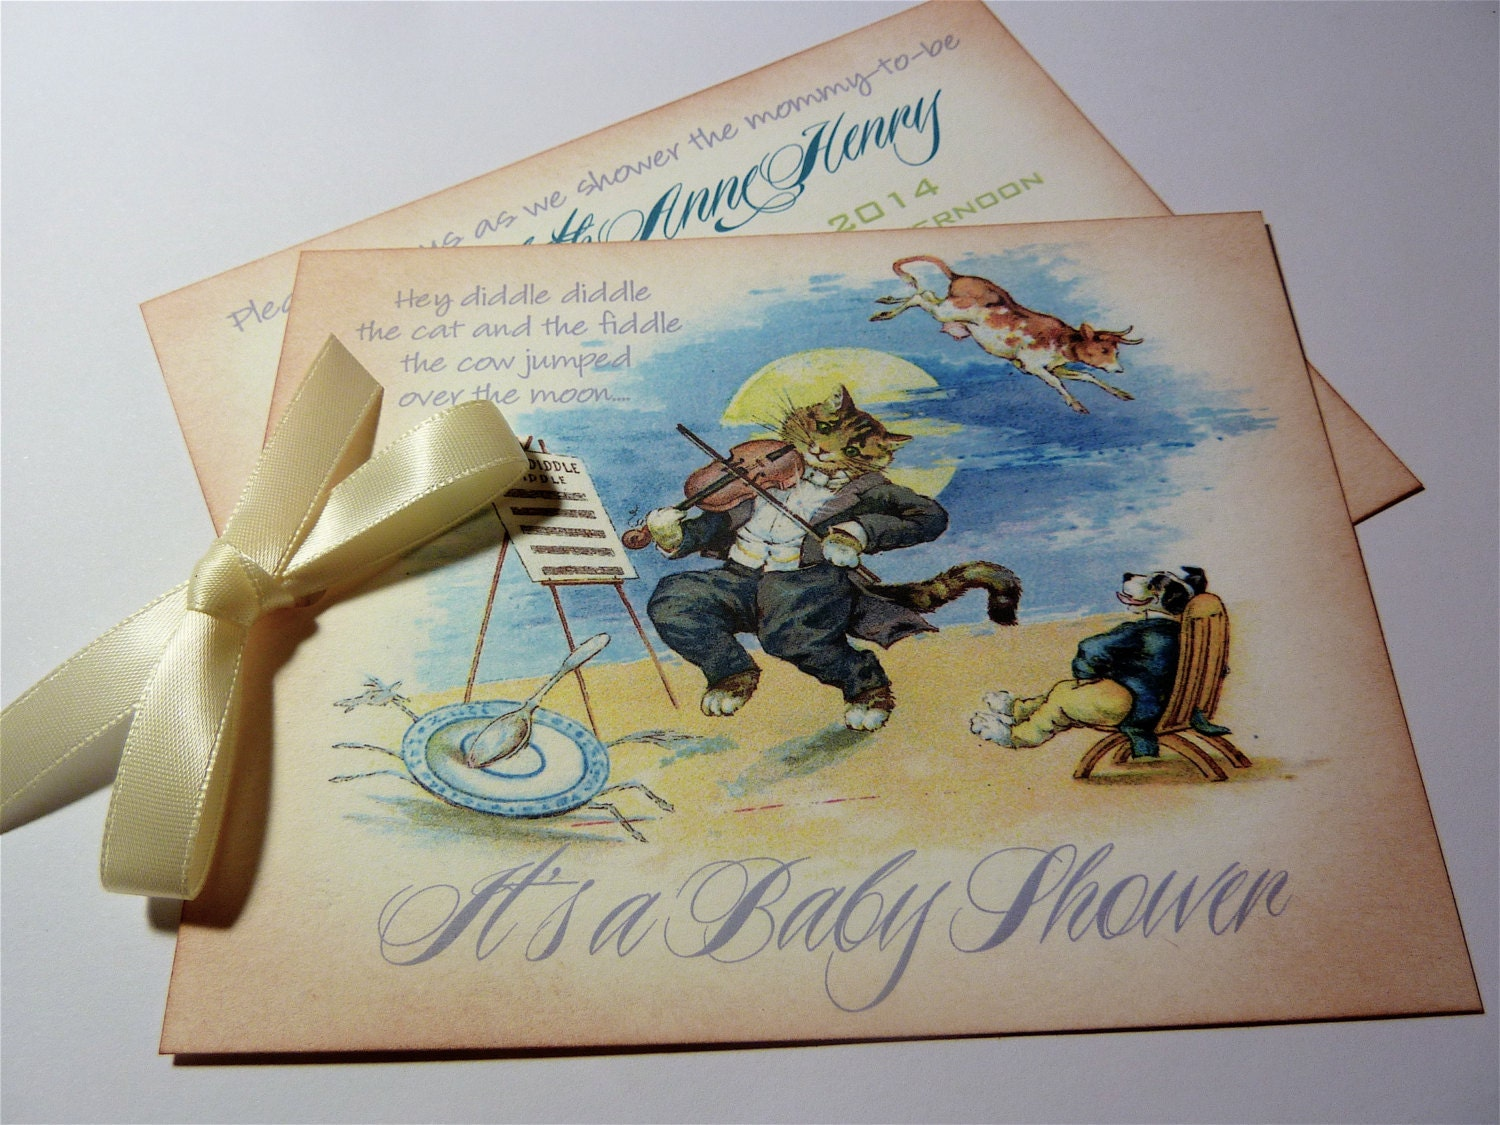 Storybook Themed Baby Shower Invitations and get inspiration to create nice invitation ideas